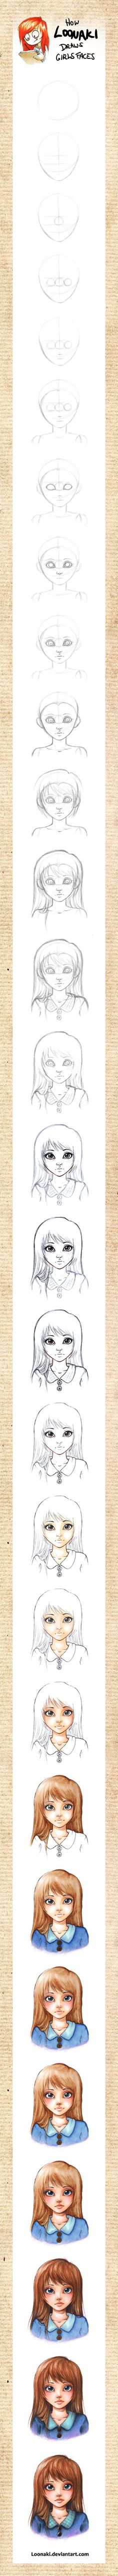 How Loonaki Draws Girls Faces by Loonaki.deviantart.com on @deviantART